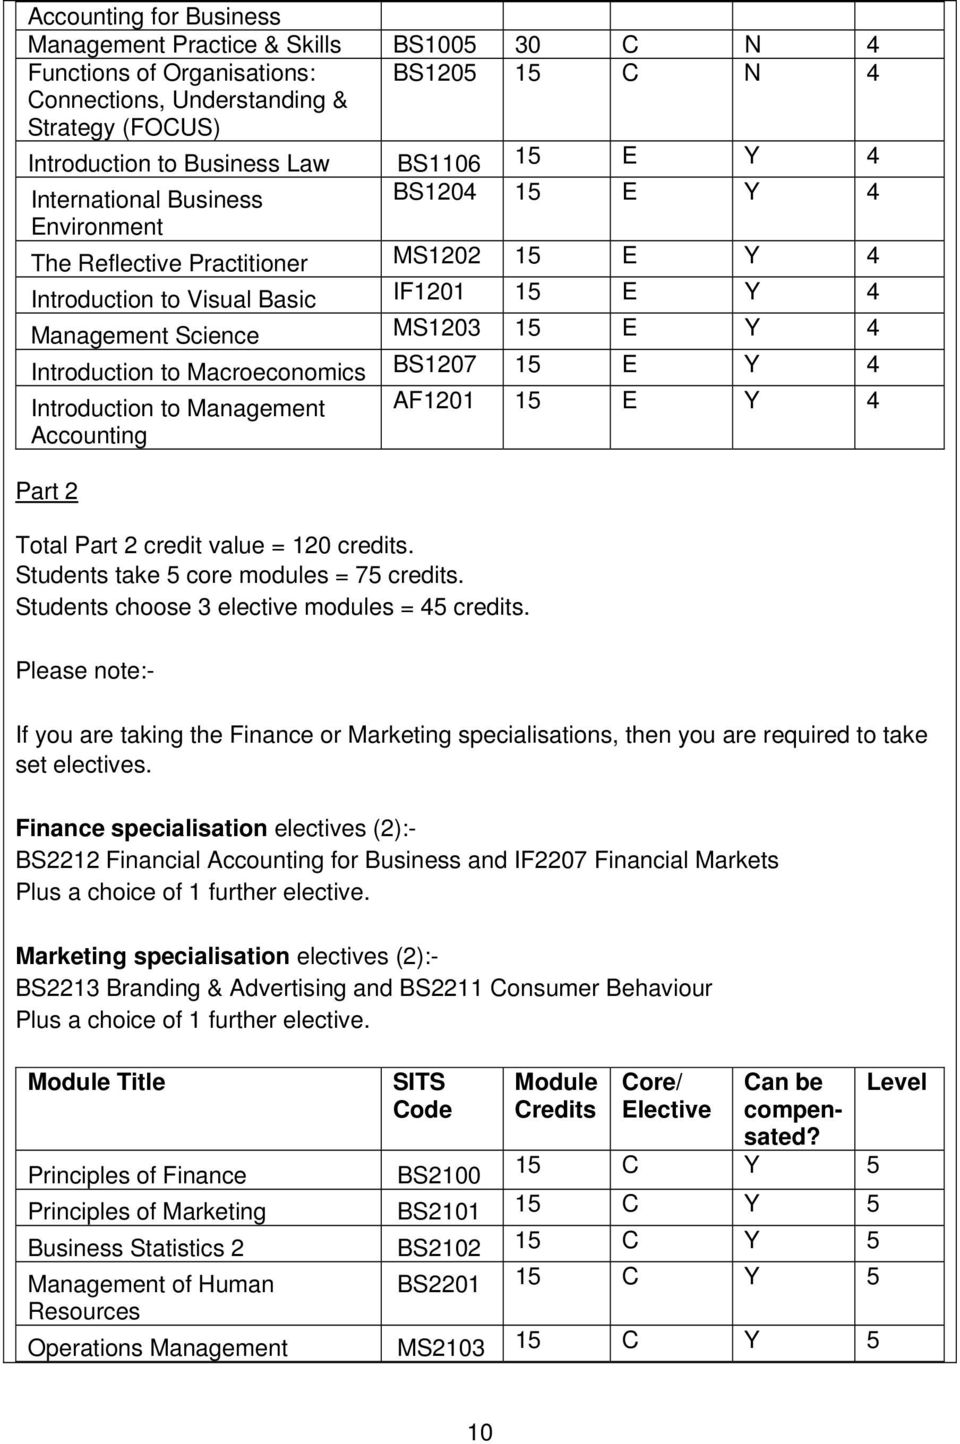 Macroeconomics BS1207 15 E Y 4 Introduction to Management AF1201 15 E Y 4 Accounting Part 2 Total Part 2 credit value = 120 credits. Students take 5 core modules = 75 credits.